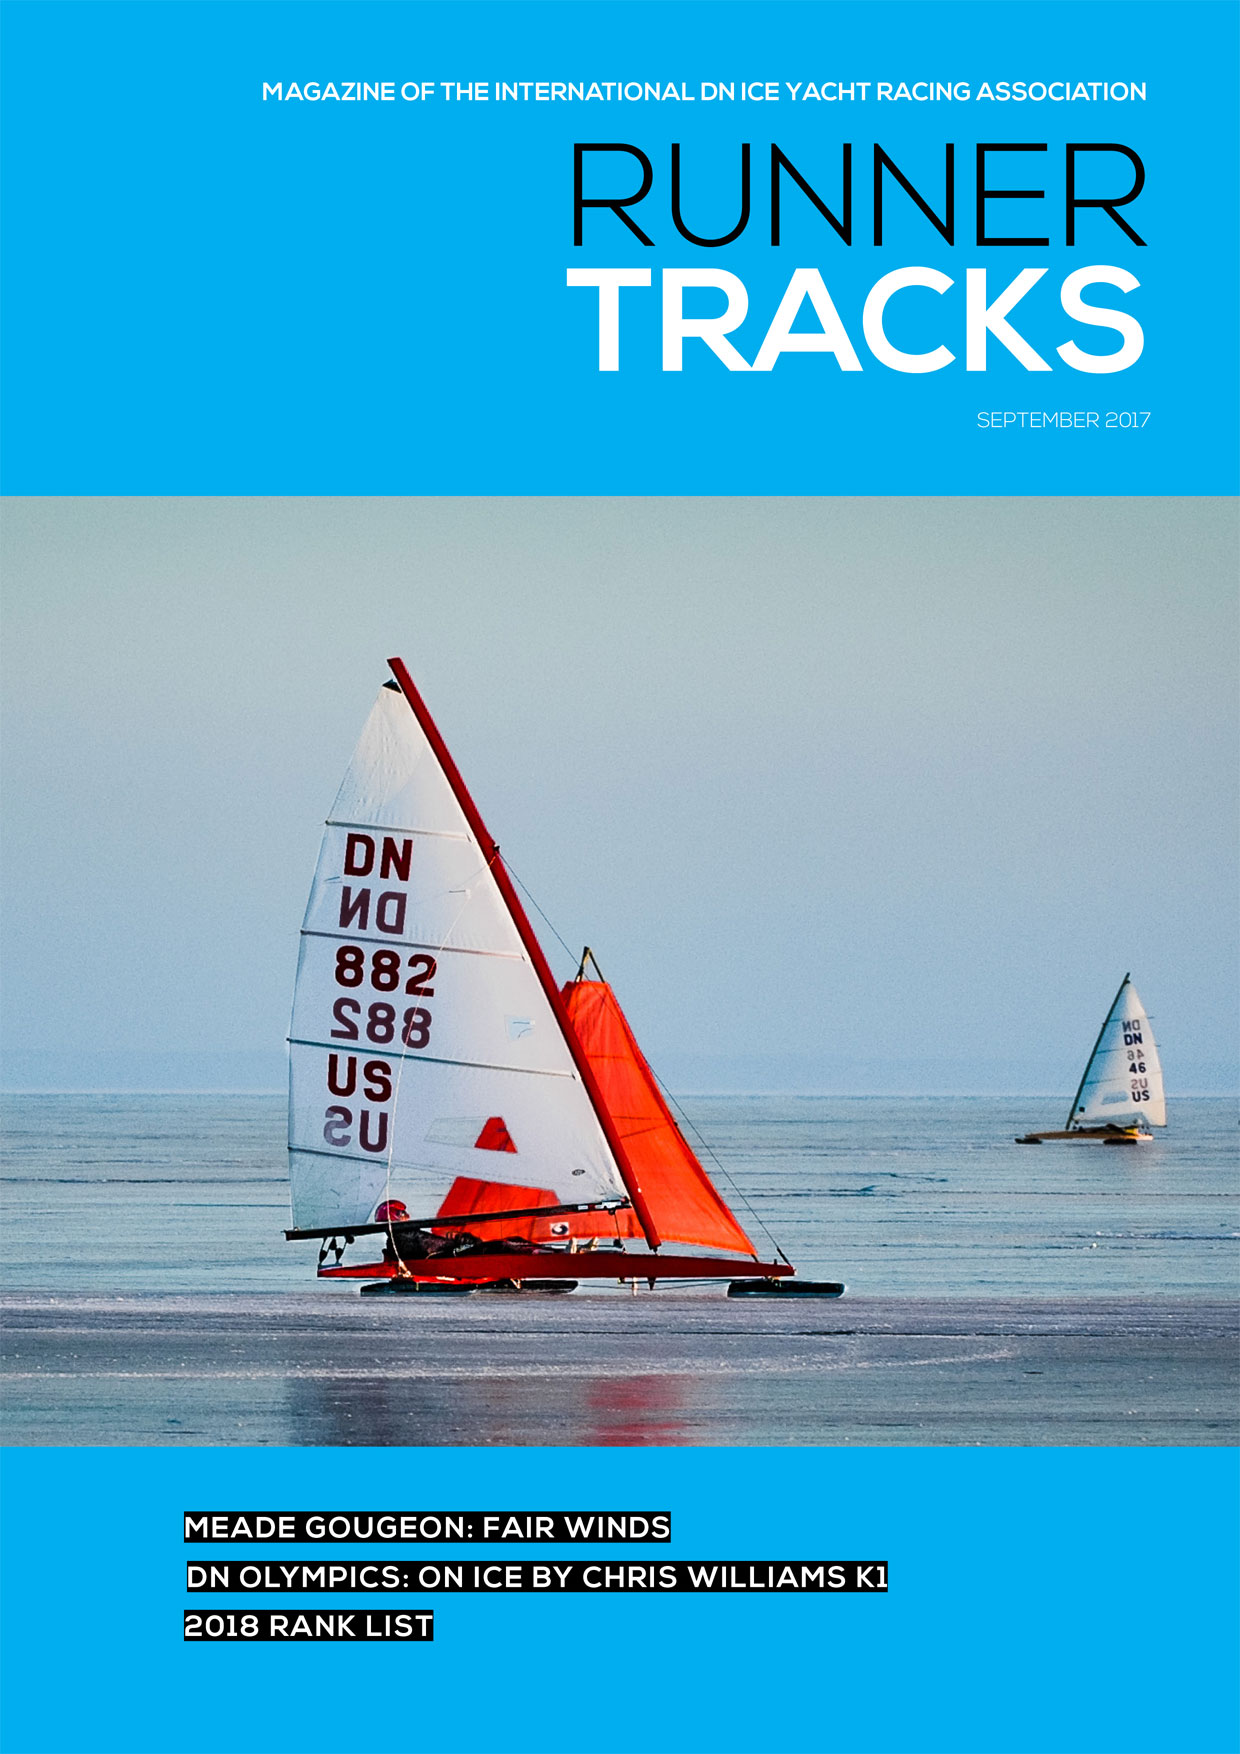 Runner-Tracks-September-2017-cover.jpg